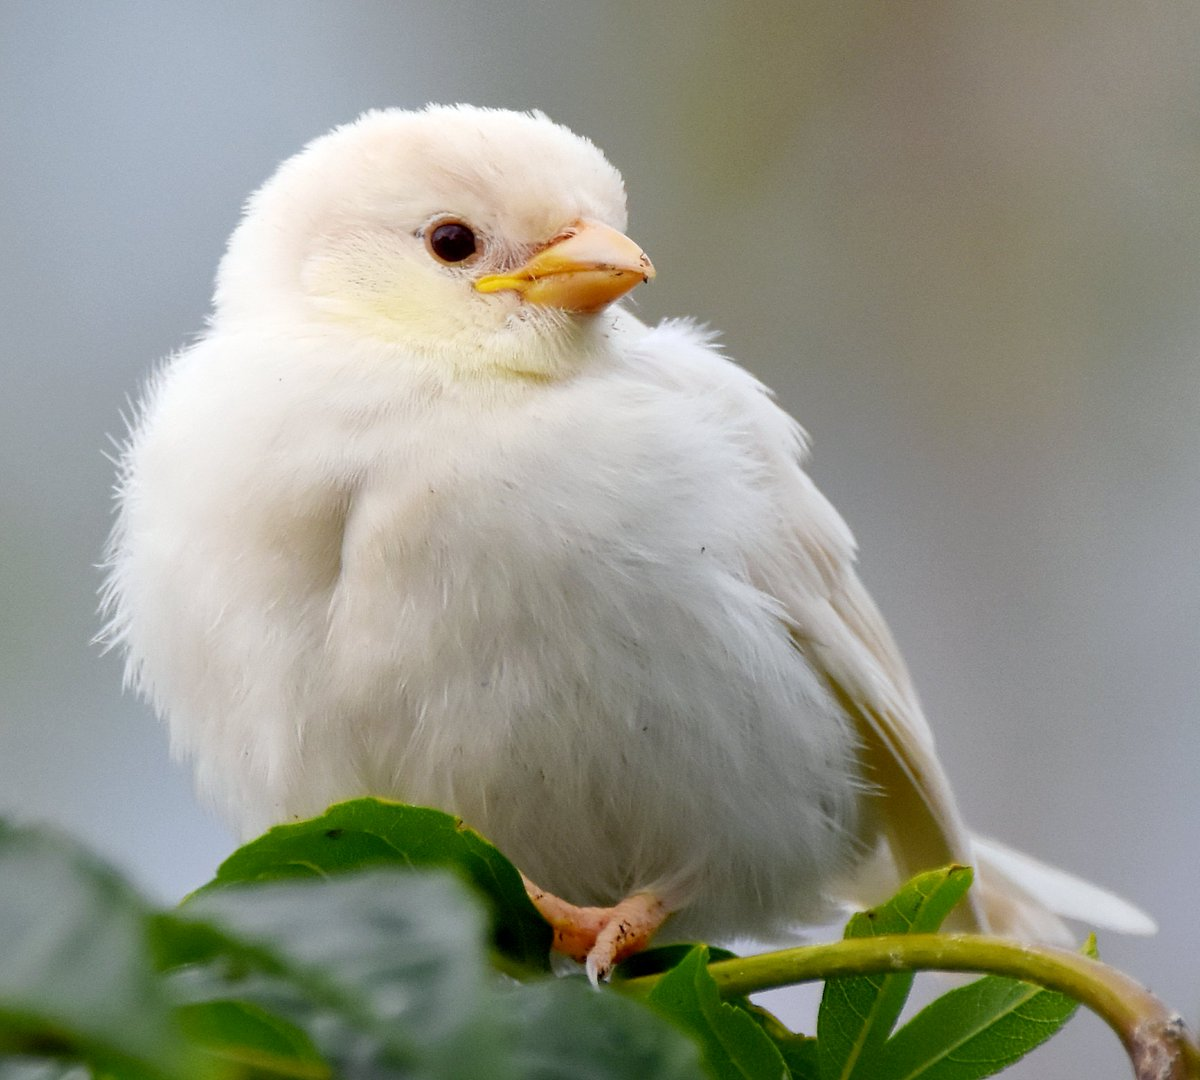 Who remembers my white Albino House Sparrow?   It's just over a year since it made National and International news after my 8 year old daughter spotted it in our Somerset village & told me about it!   Of course, I went out to try & find & photograph it!   https://www. dailymail.co.uk/sciencetech/ar ticle-5804499/The-one-million-bird-Rare-albino-house-sparrow-spotted-Somerset.html  … <br>http://pic.twitter.com/2QPrJCqSn2